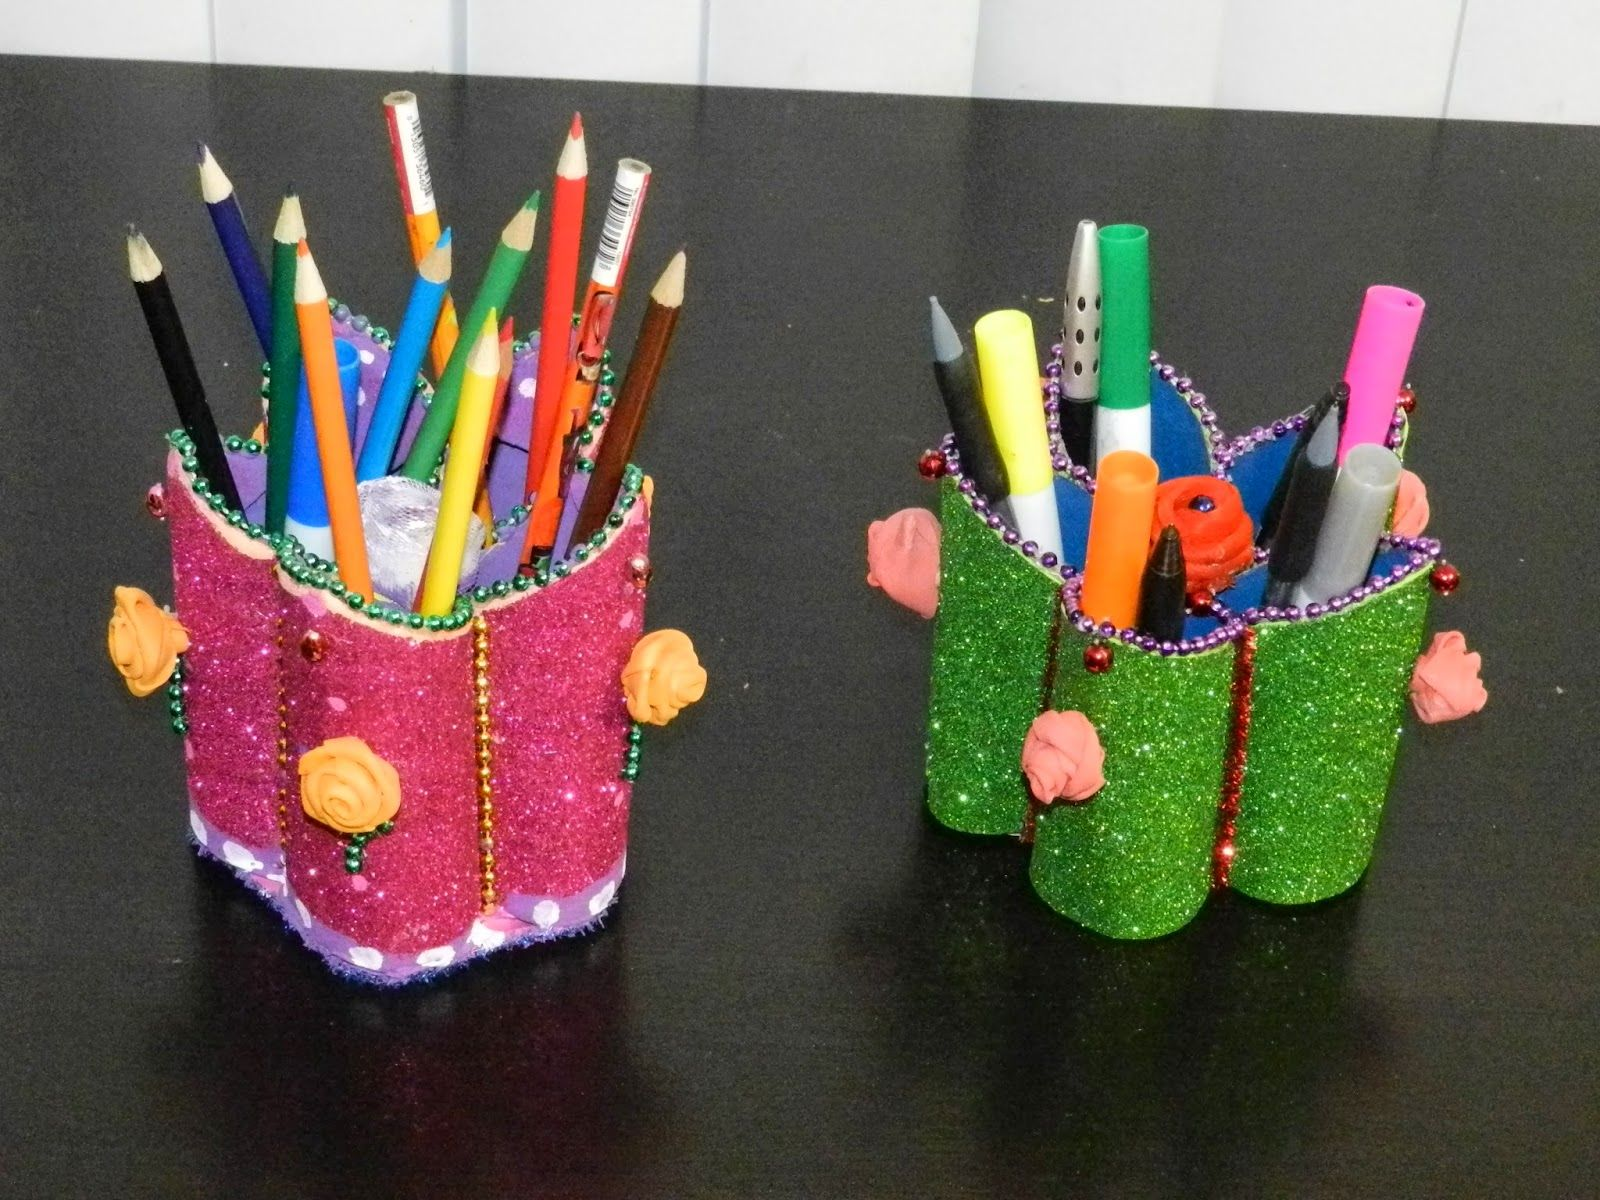 Flower Shaped Pen Stand Holder With Tissue Paper Holder And Foam